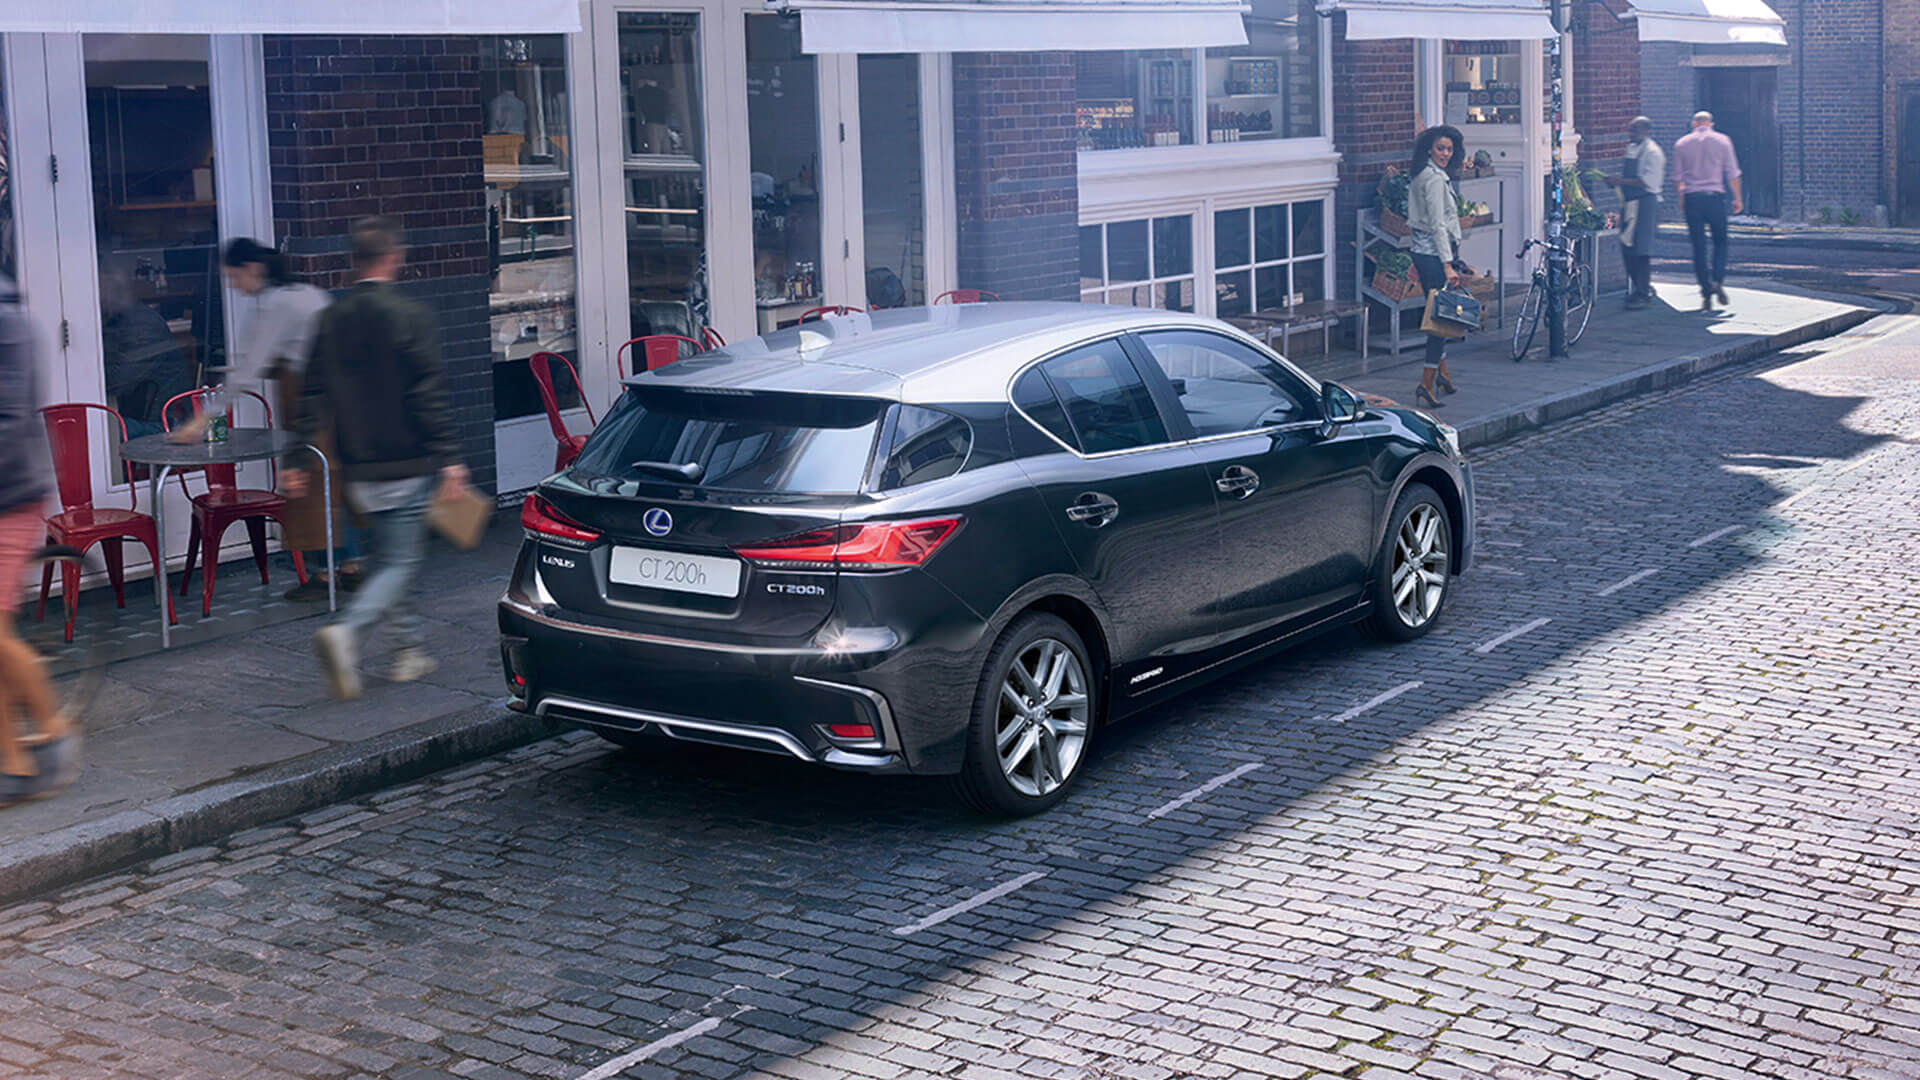 2018 lexus ct 200h my18 gallery 009 lifestyle